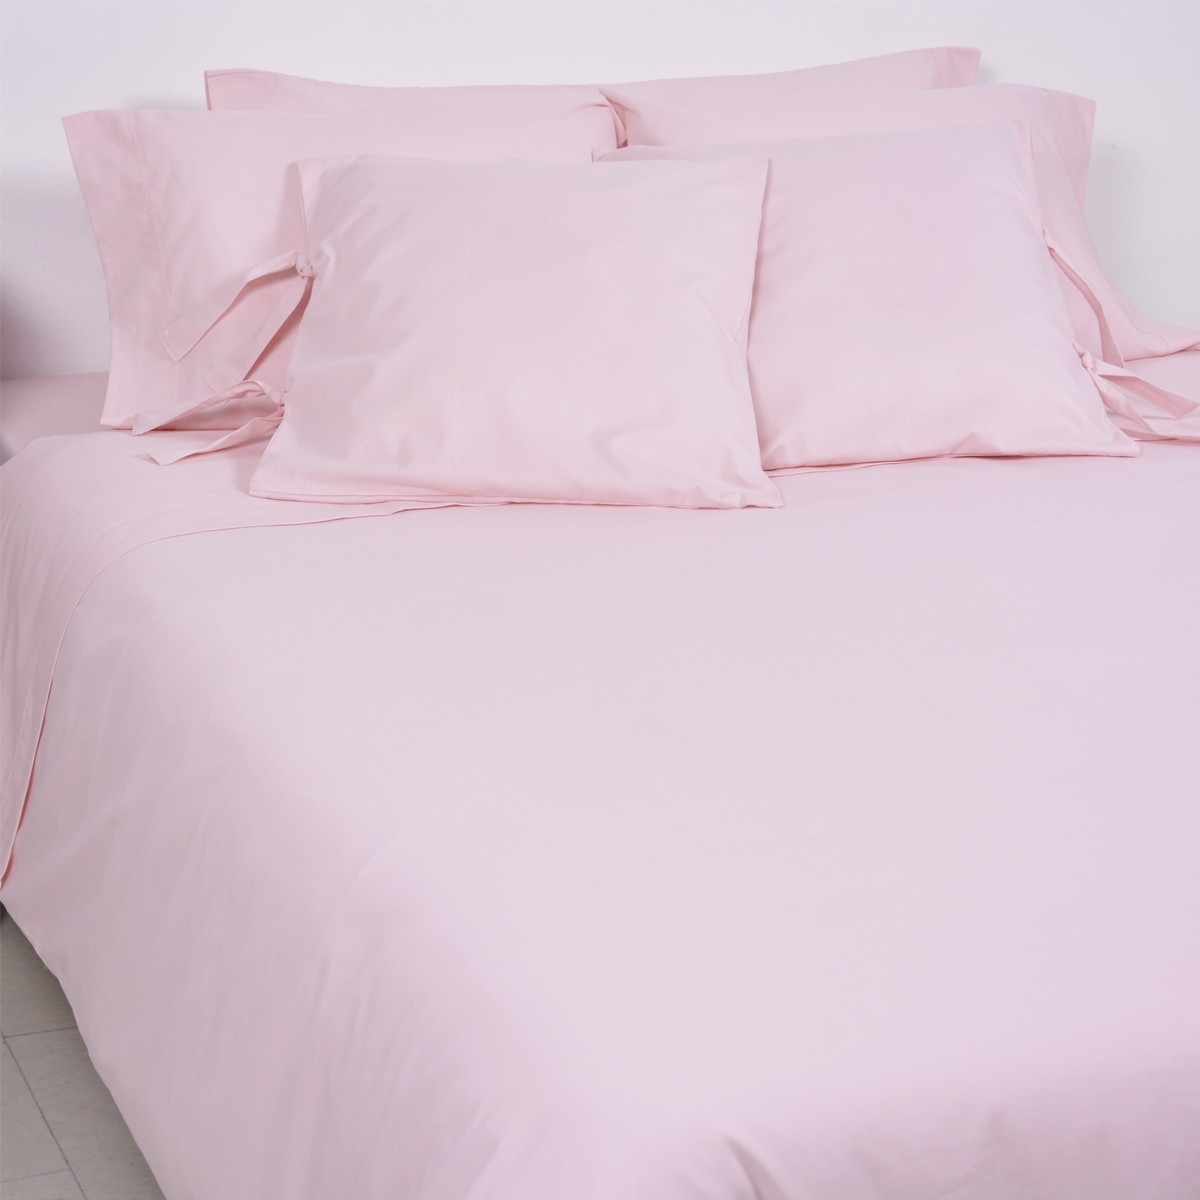 Duvet Cover, Nude